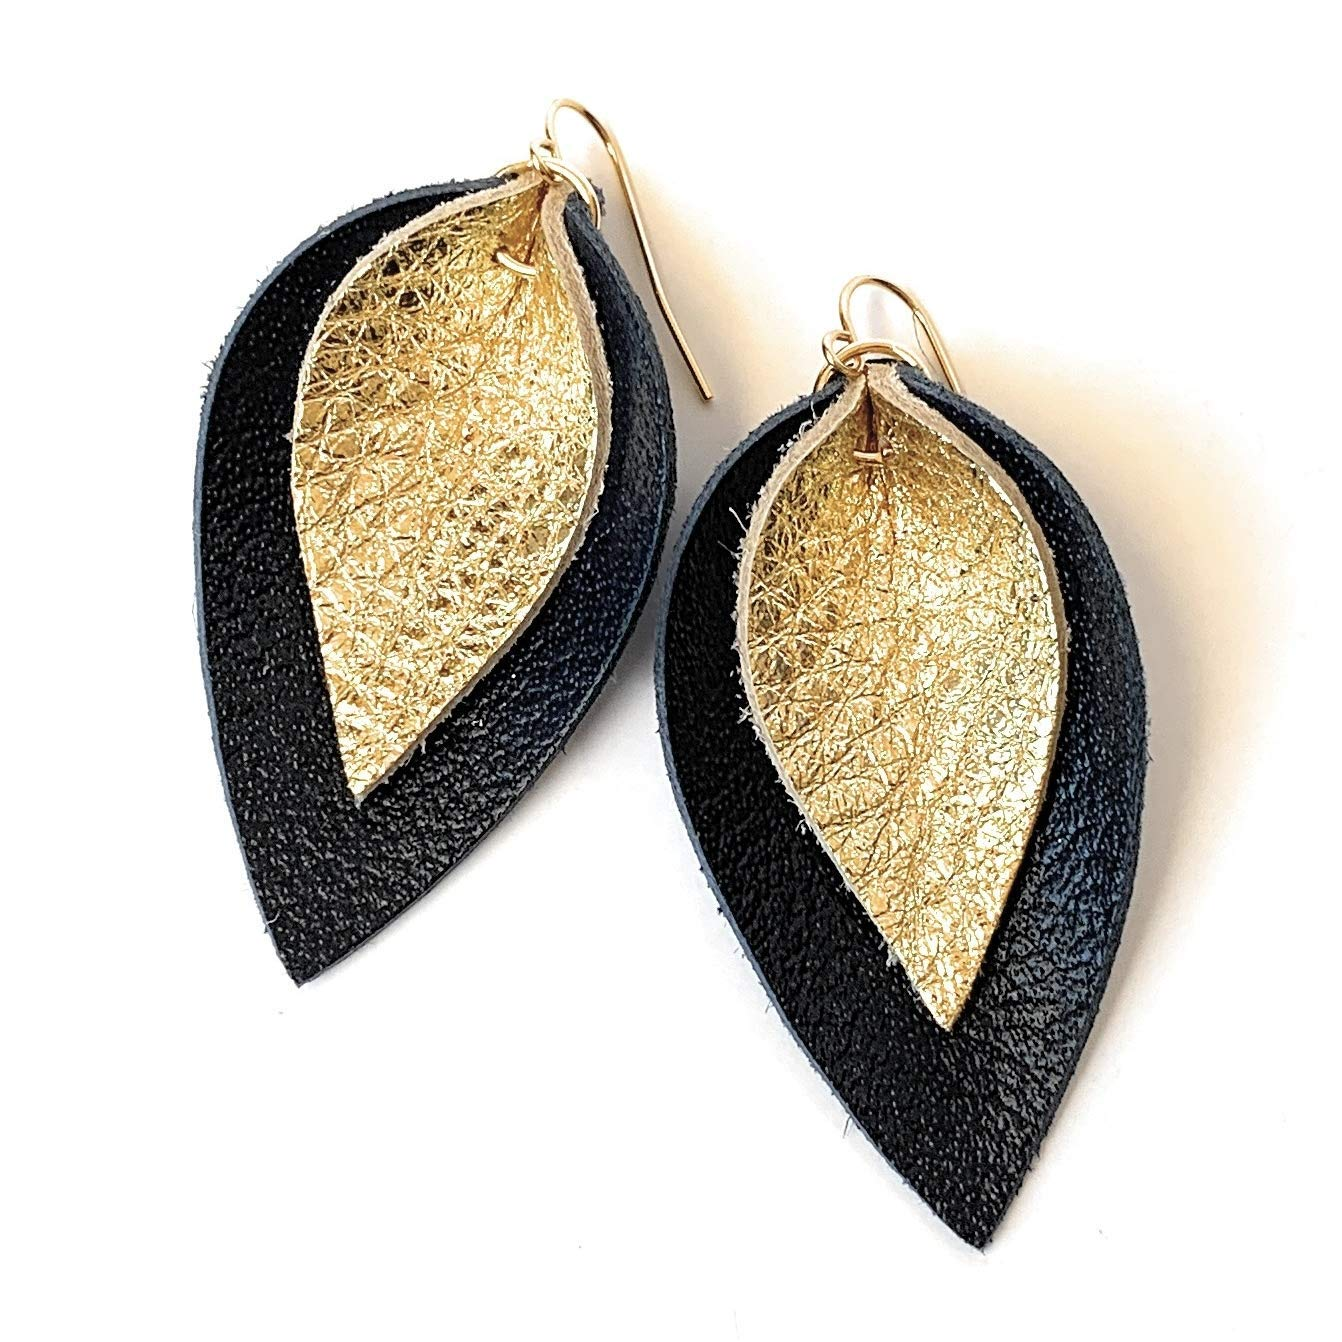 Gold leather teardrop earrings Gold Leather Earrings Leather Earrings Handmade Earrings Gold Leather Leather Jewelry Leather *Free Shipping